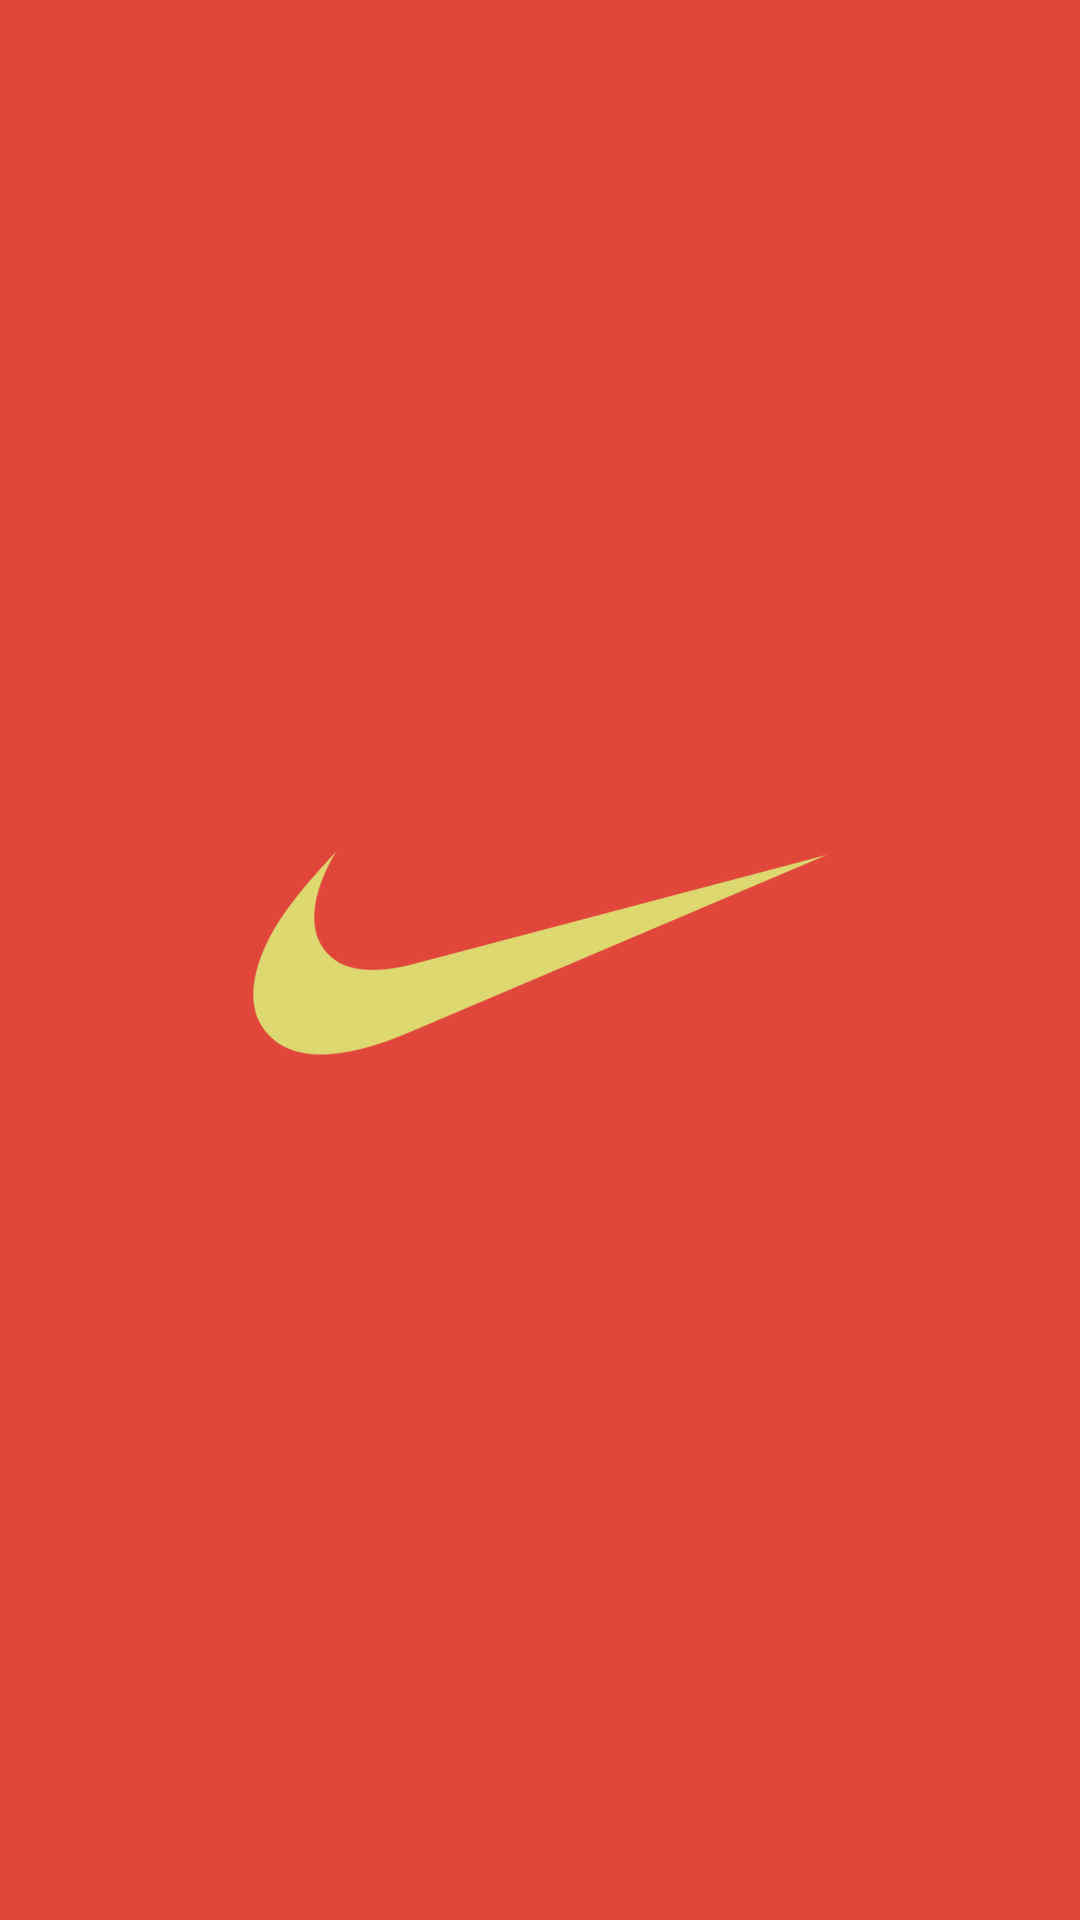 nike24 - 37 NIKE HQ Smartphone Wallpaper Collection